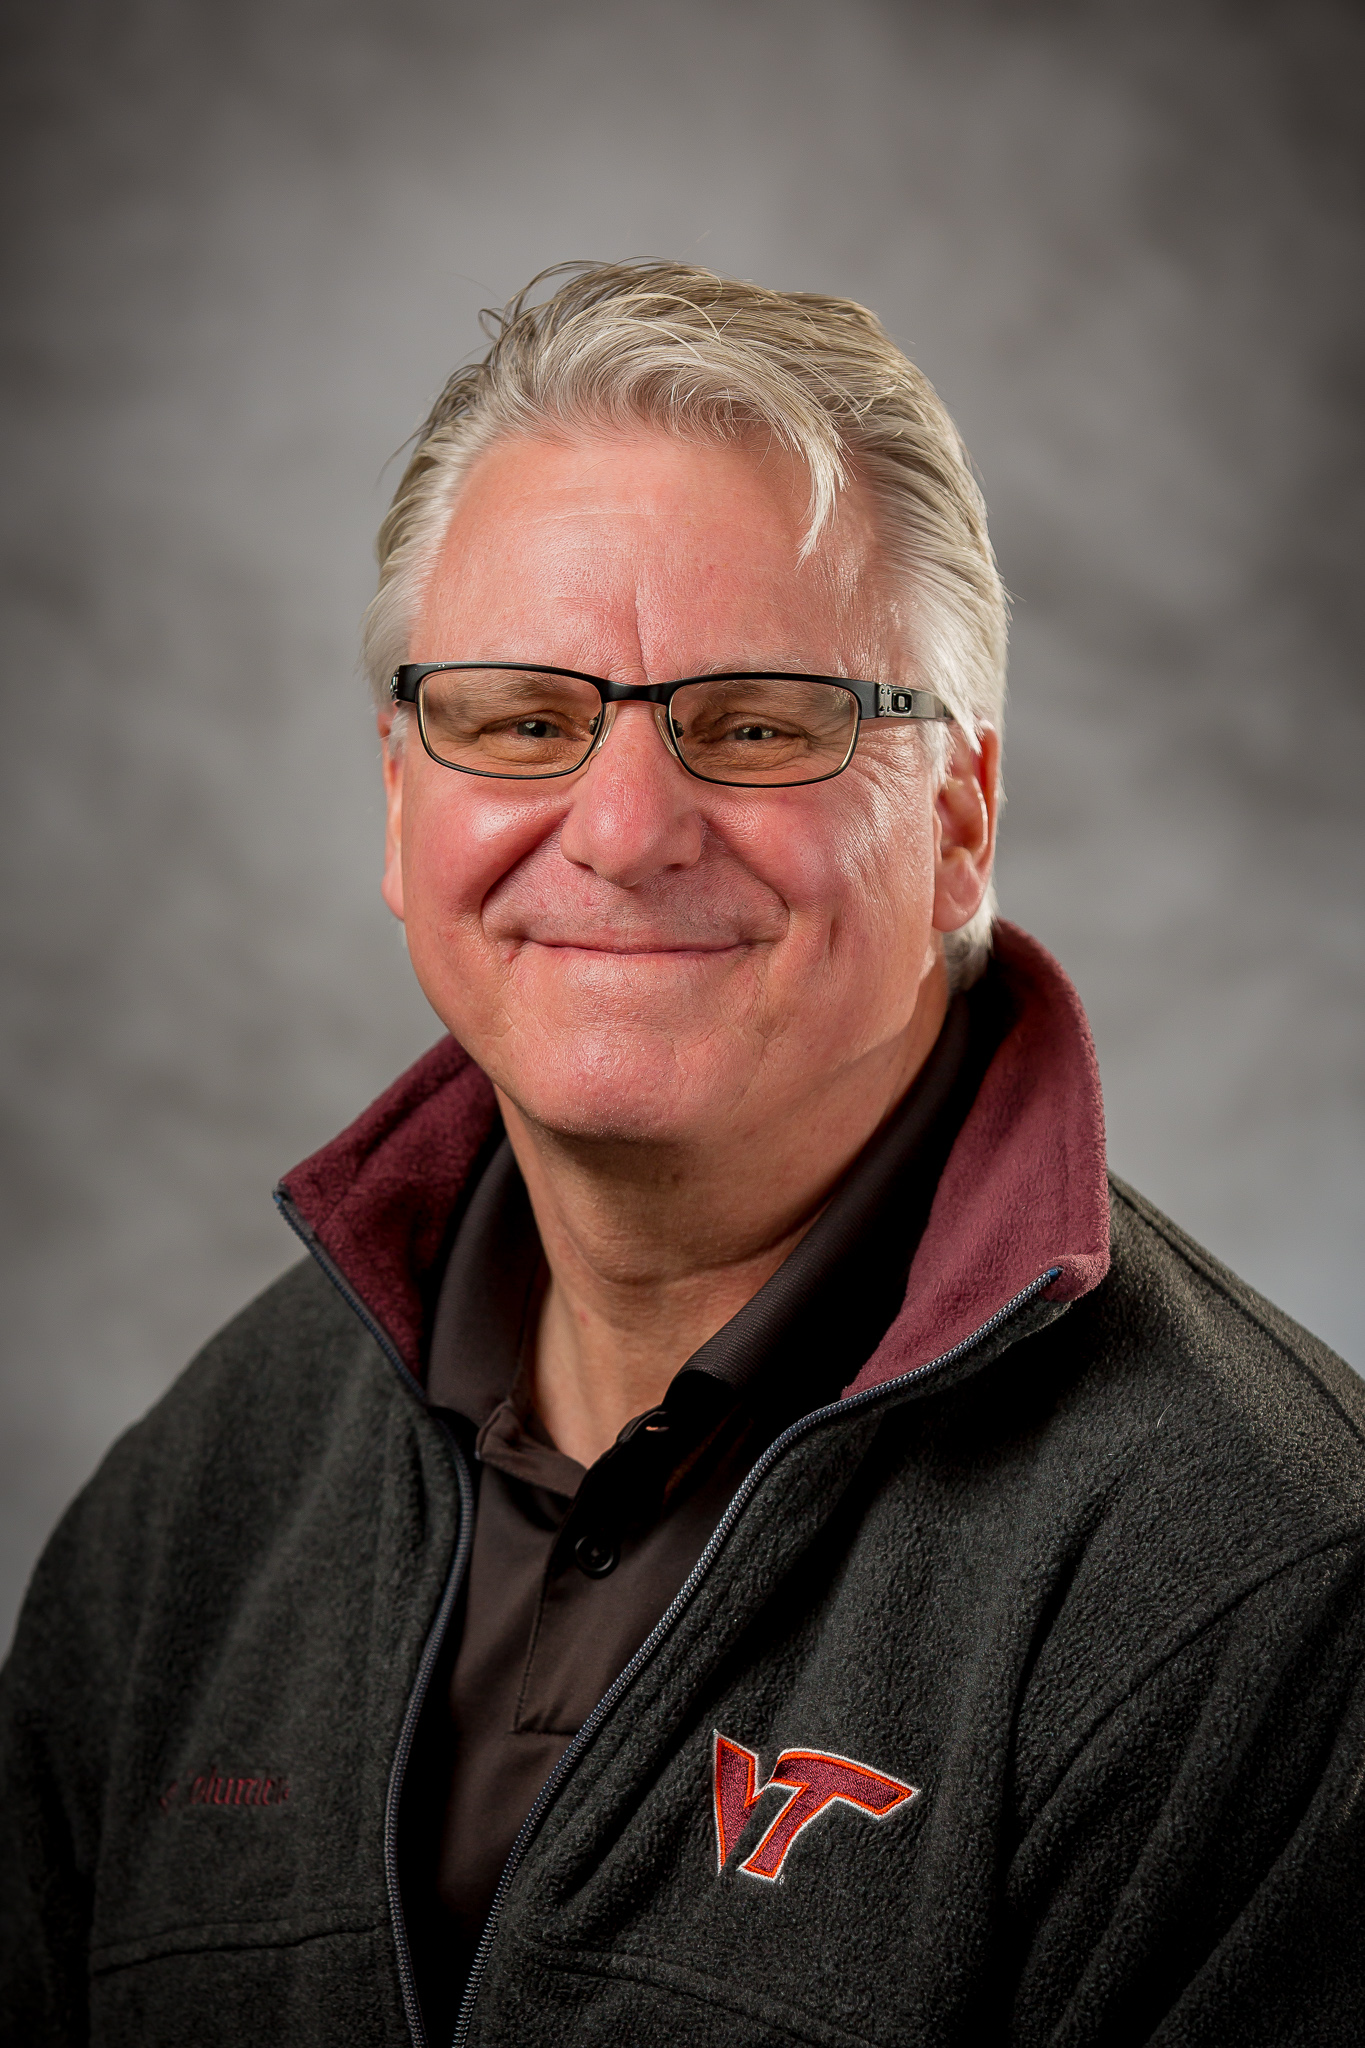 picture of man with glasses wearing a black zip up jacket